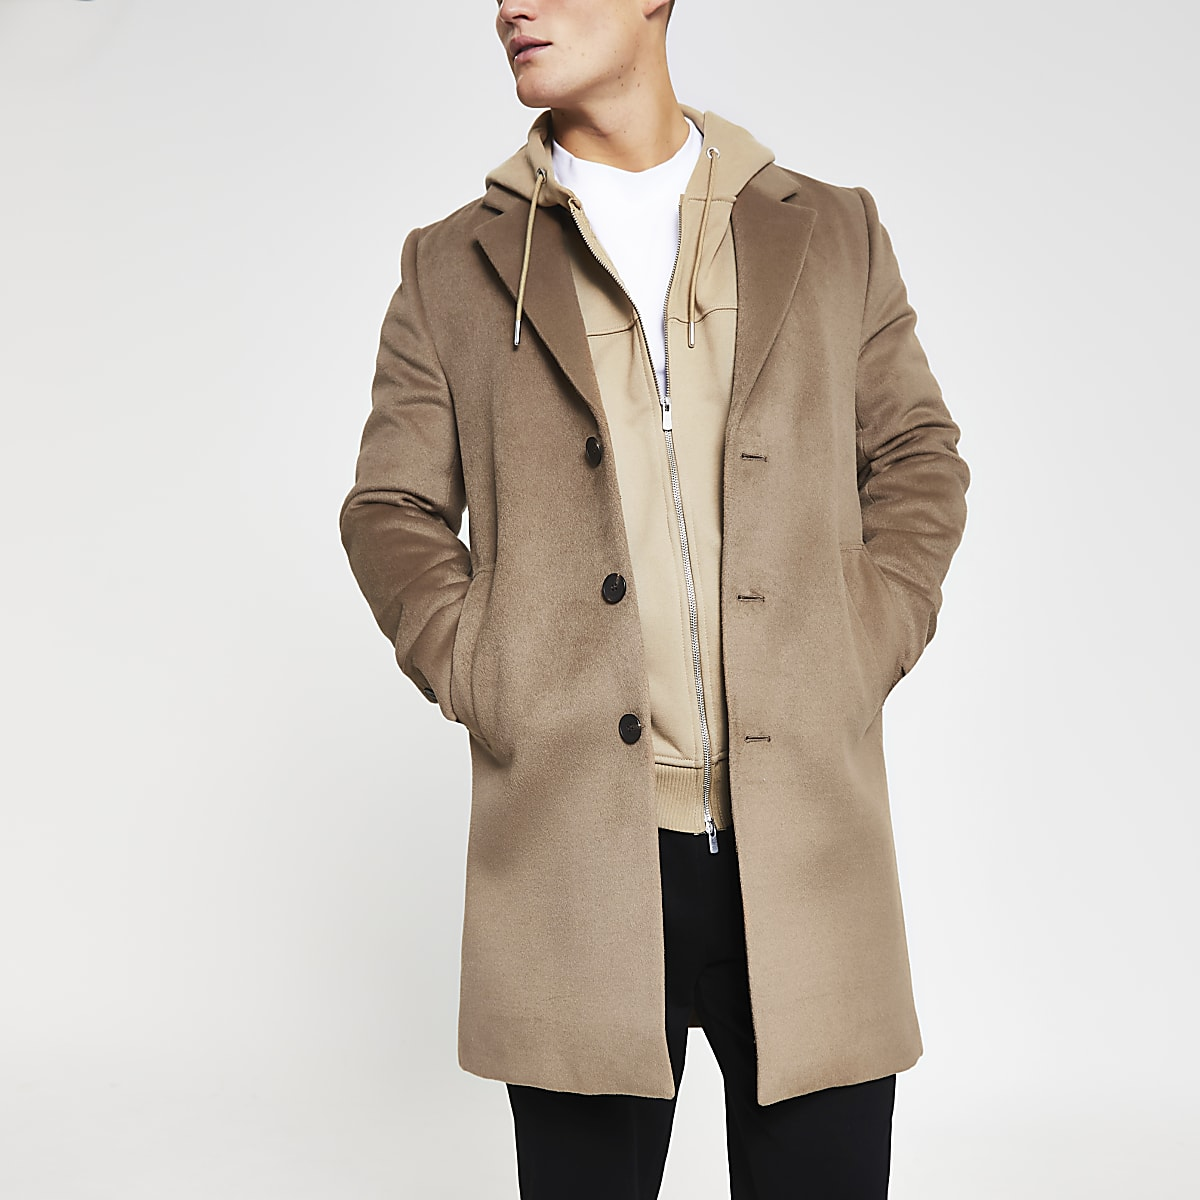 camel overcoat from River island